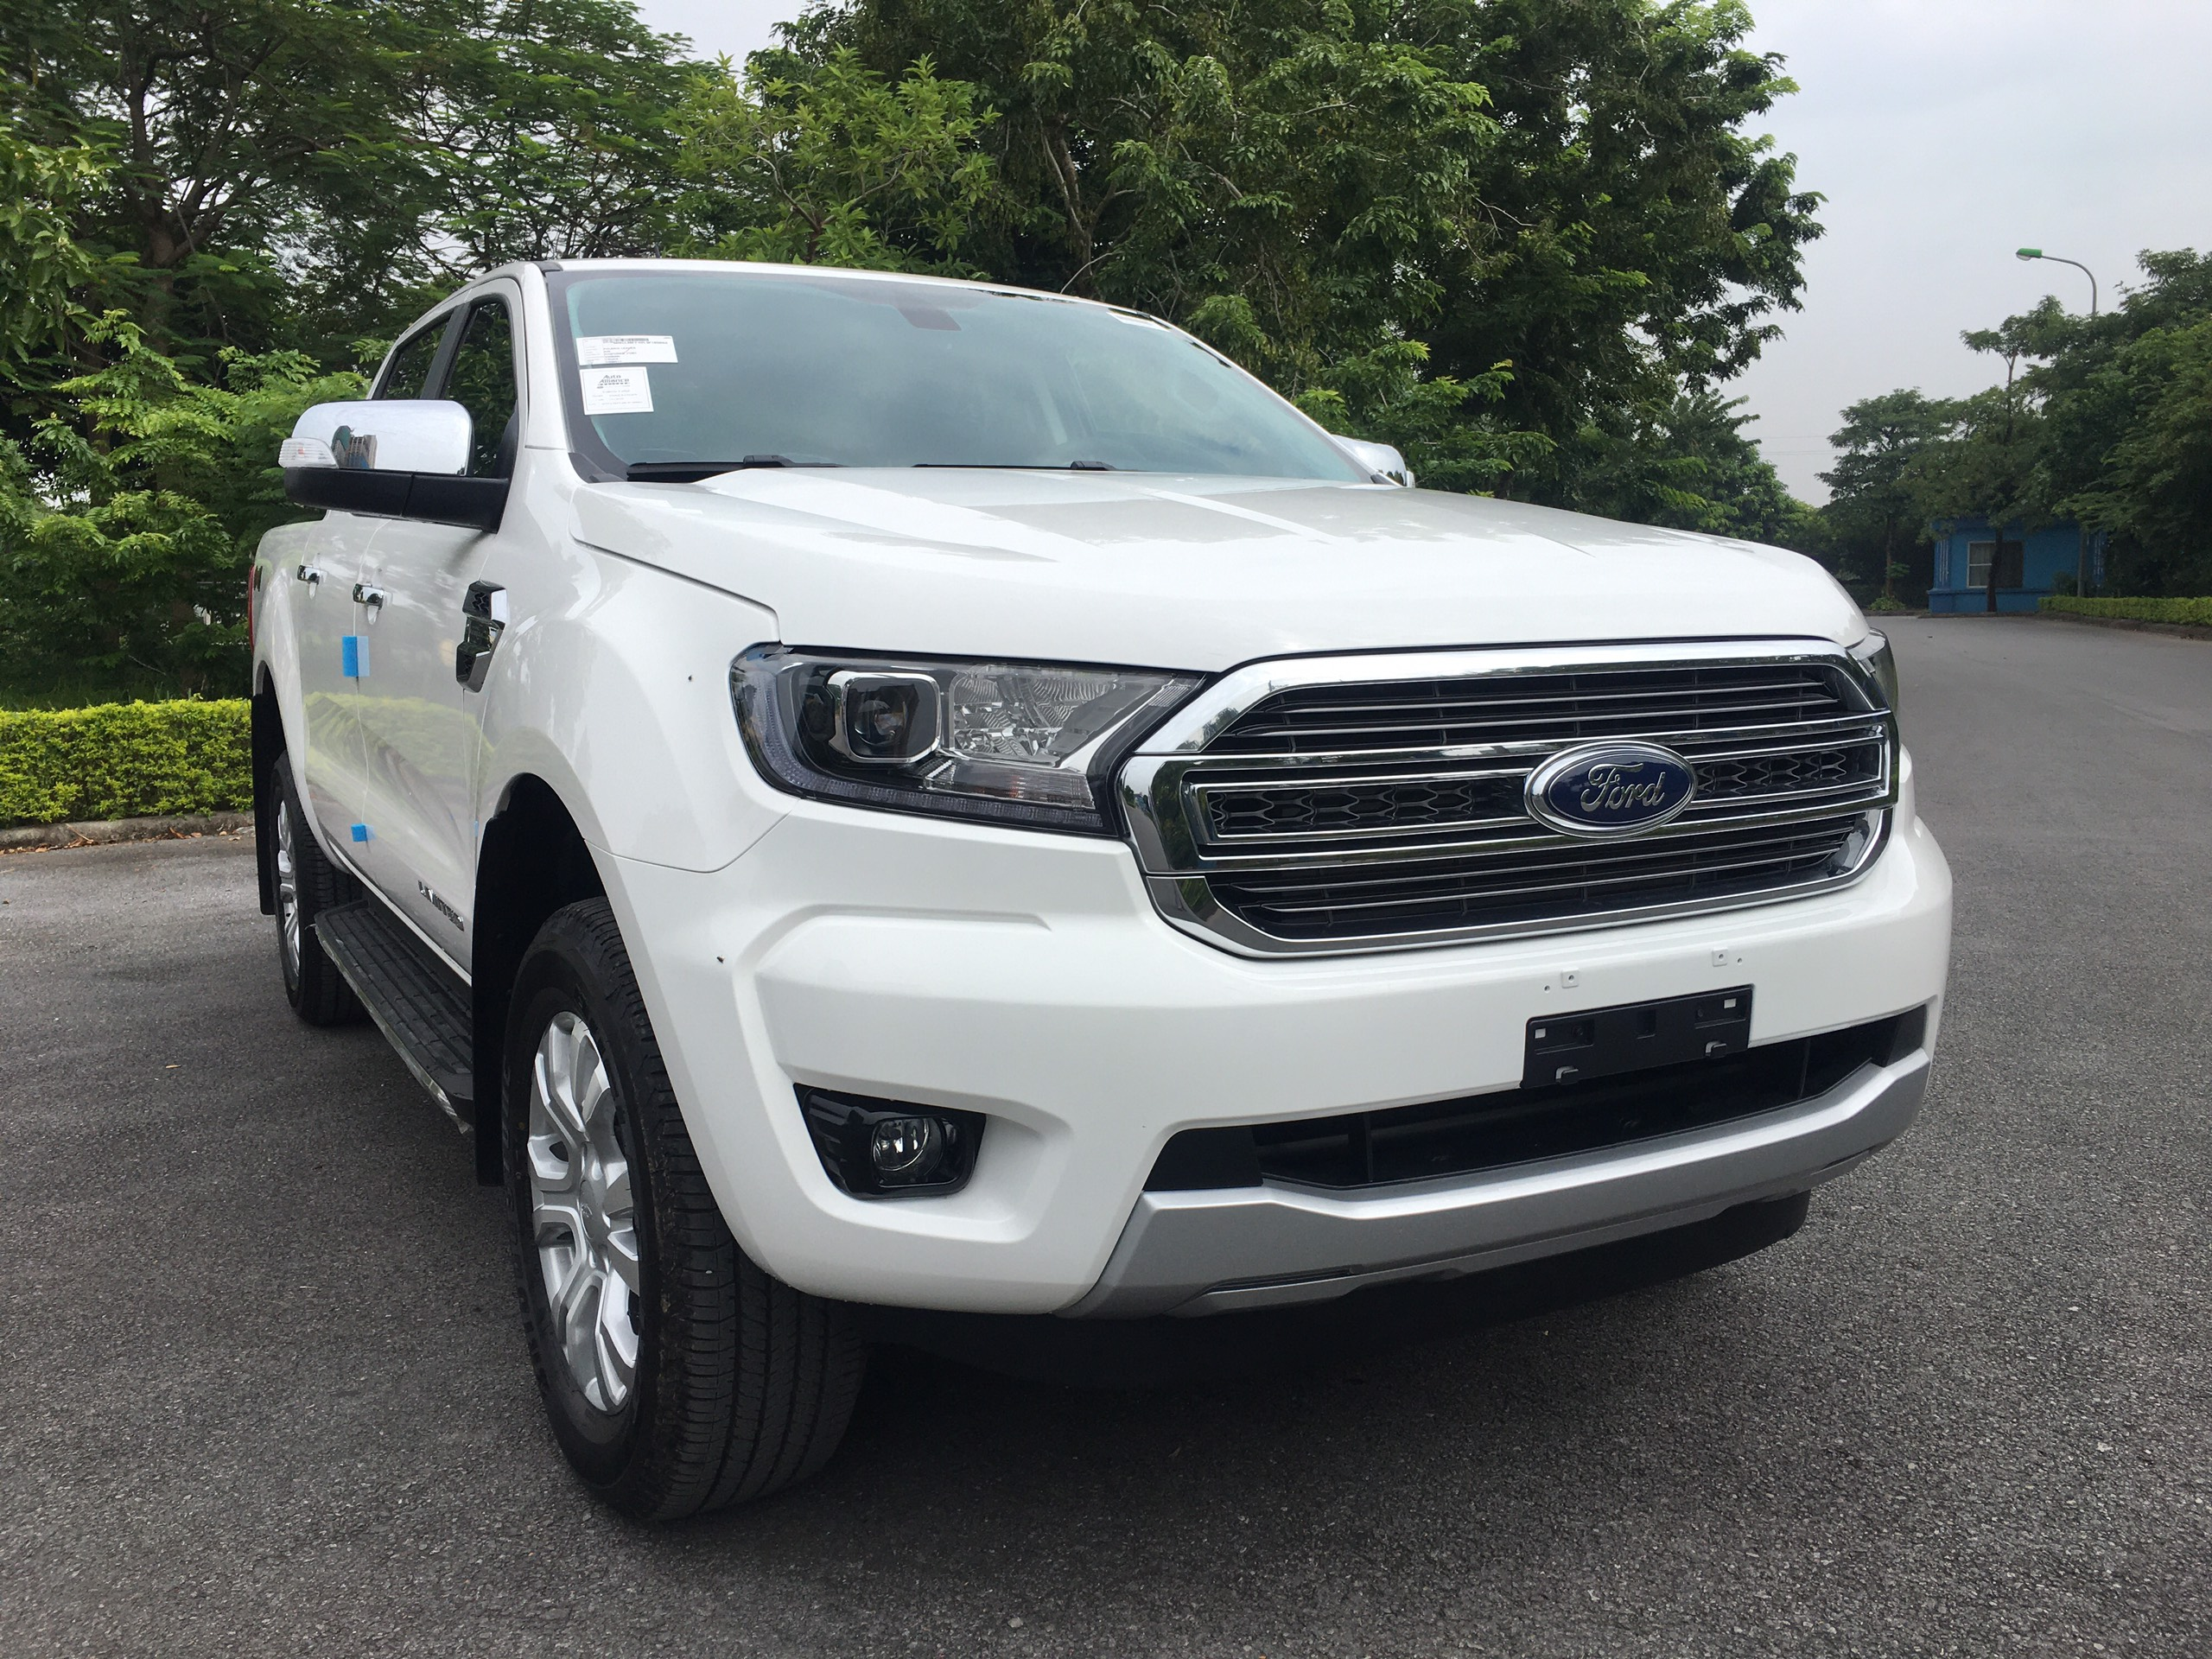 Ford Ranger Limited 2.0L 4×4 AT5